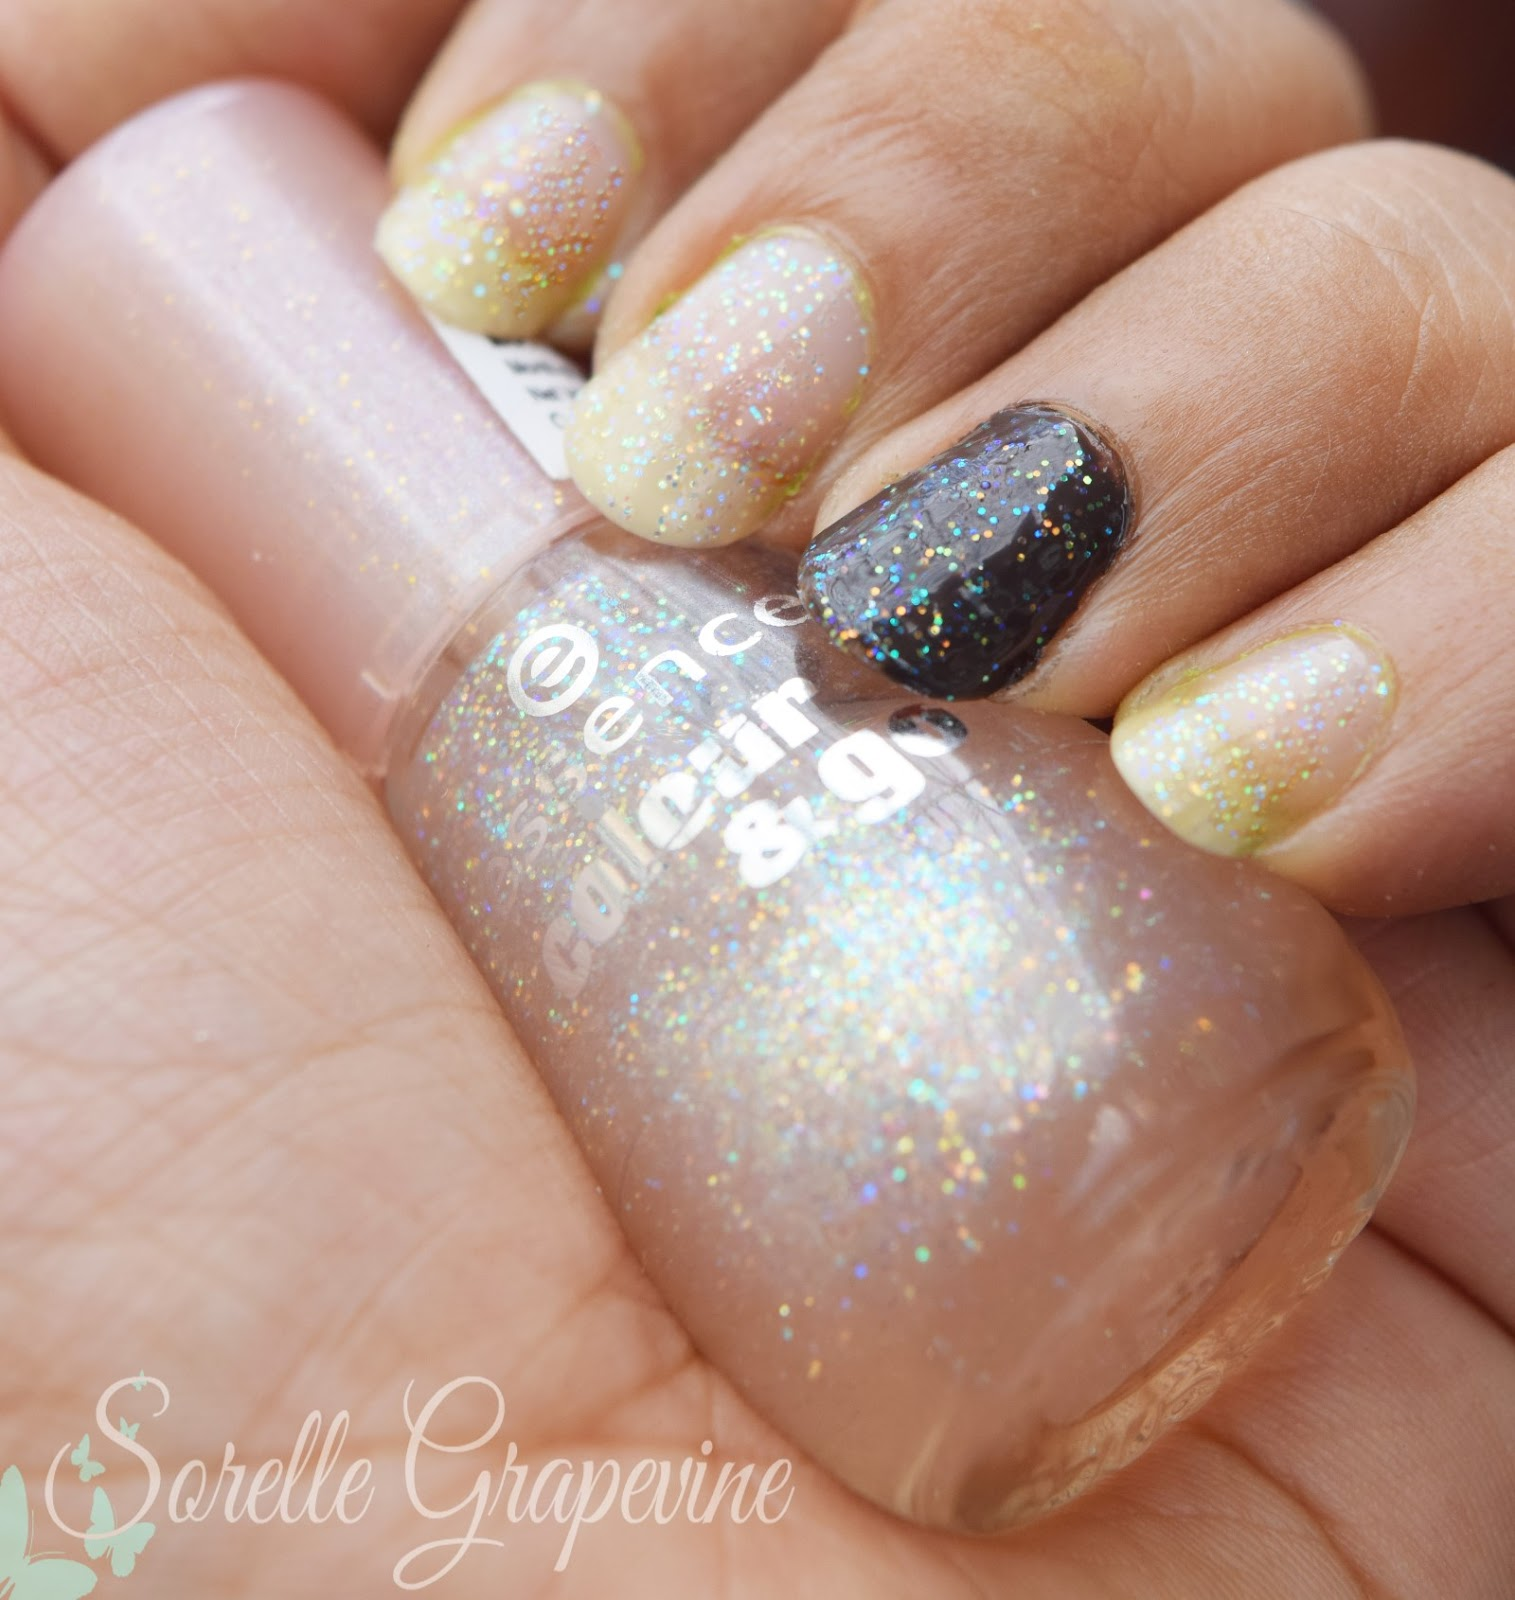 Essence Gel Nail Polish Space Queen: Sorelle GrapevineEssence Color & Go Nail Polishes Its